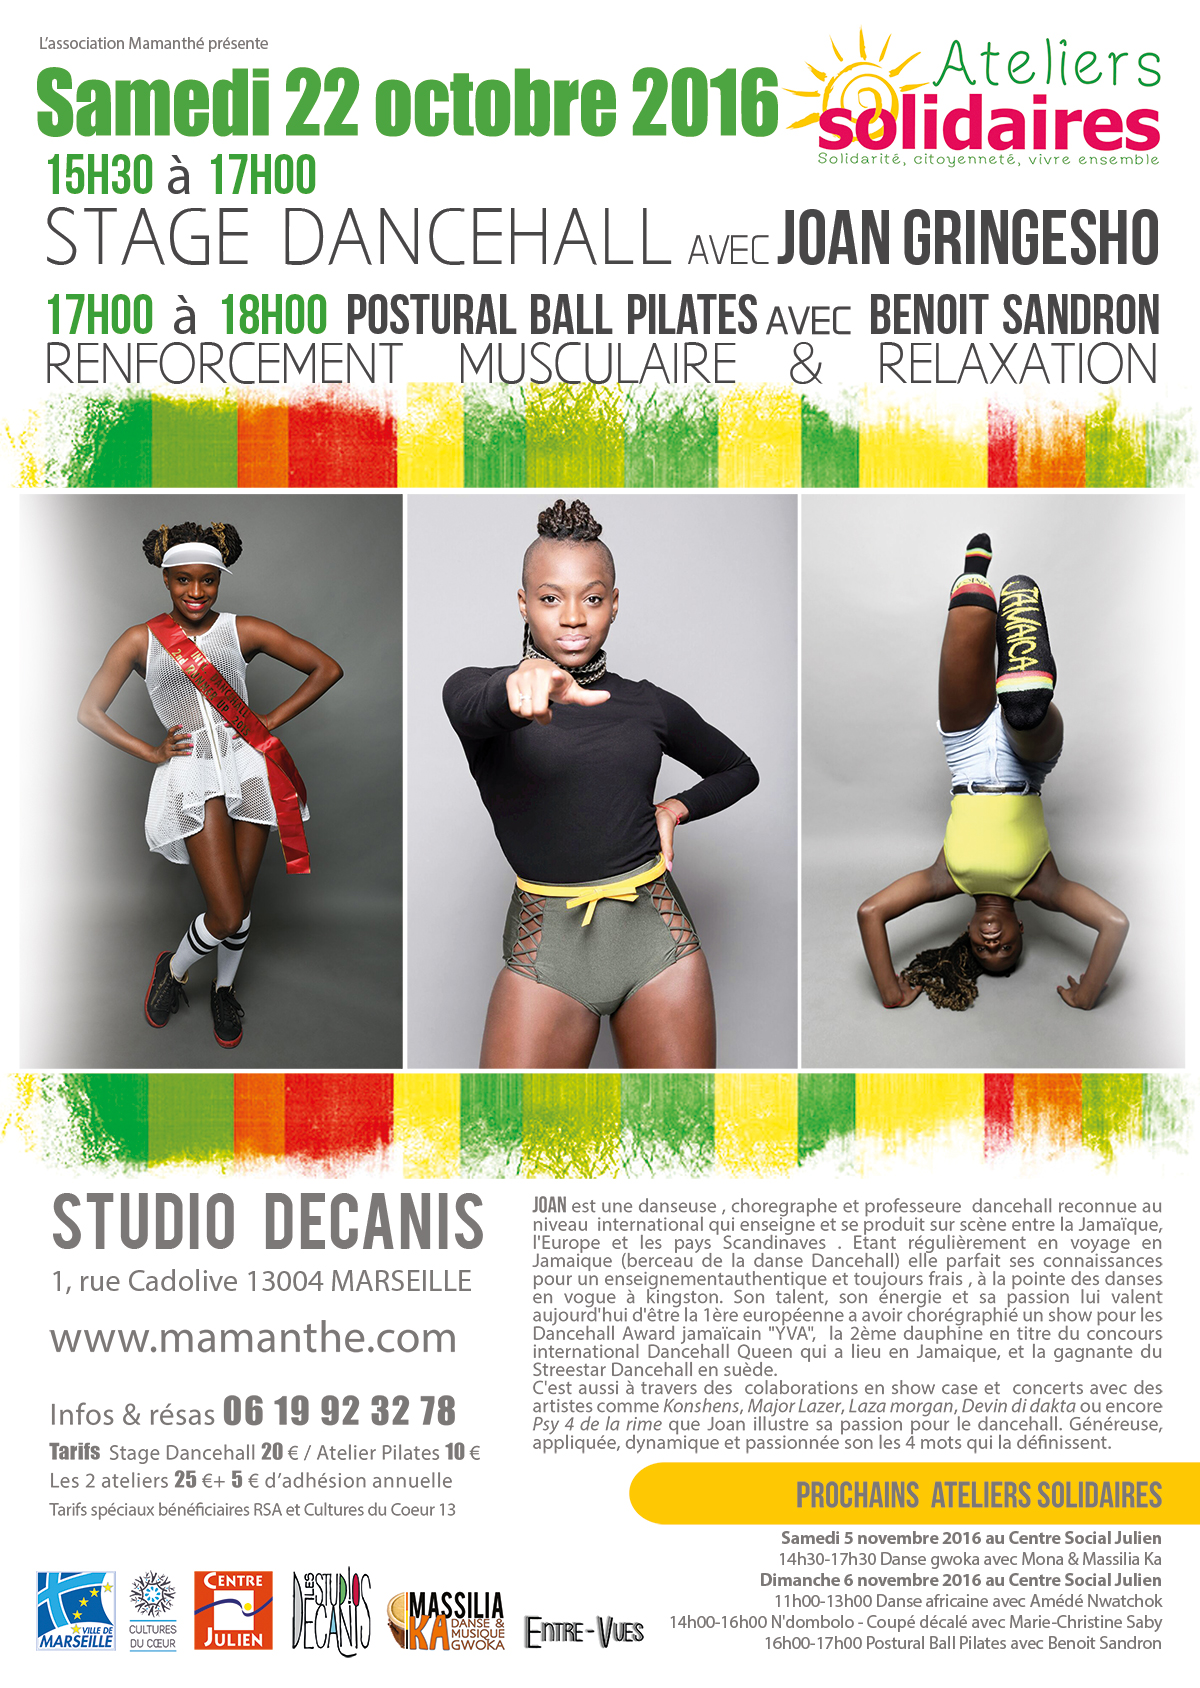 ateliers-solidaires-dancehall-pilates-octobre-2016-decanis